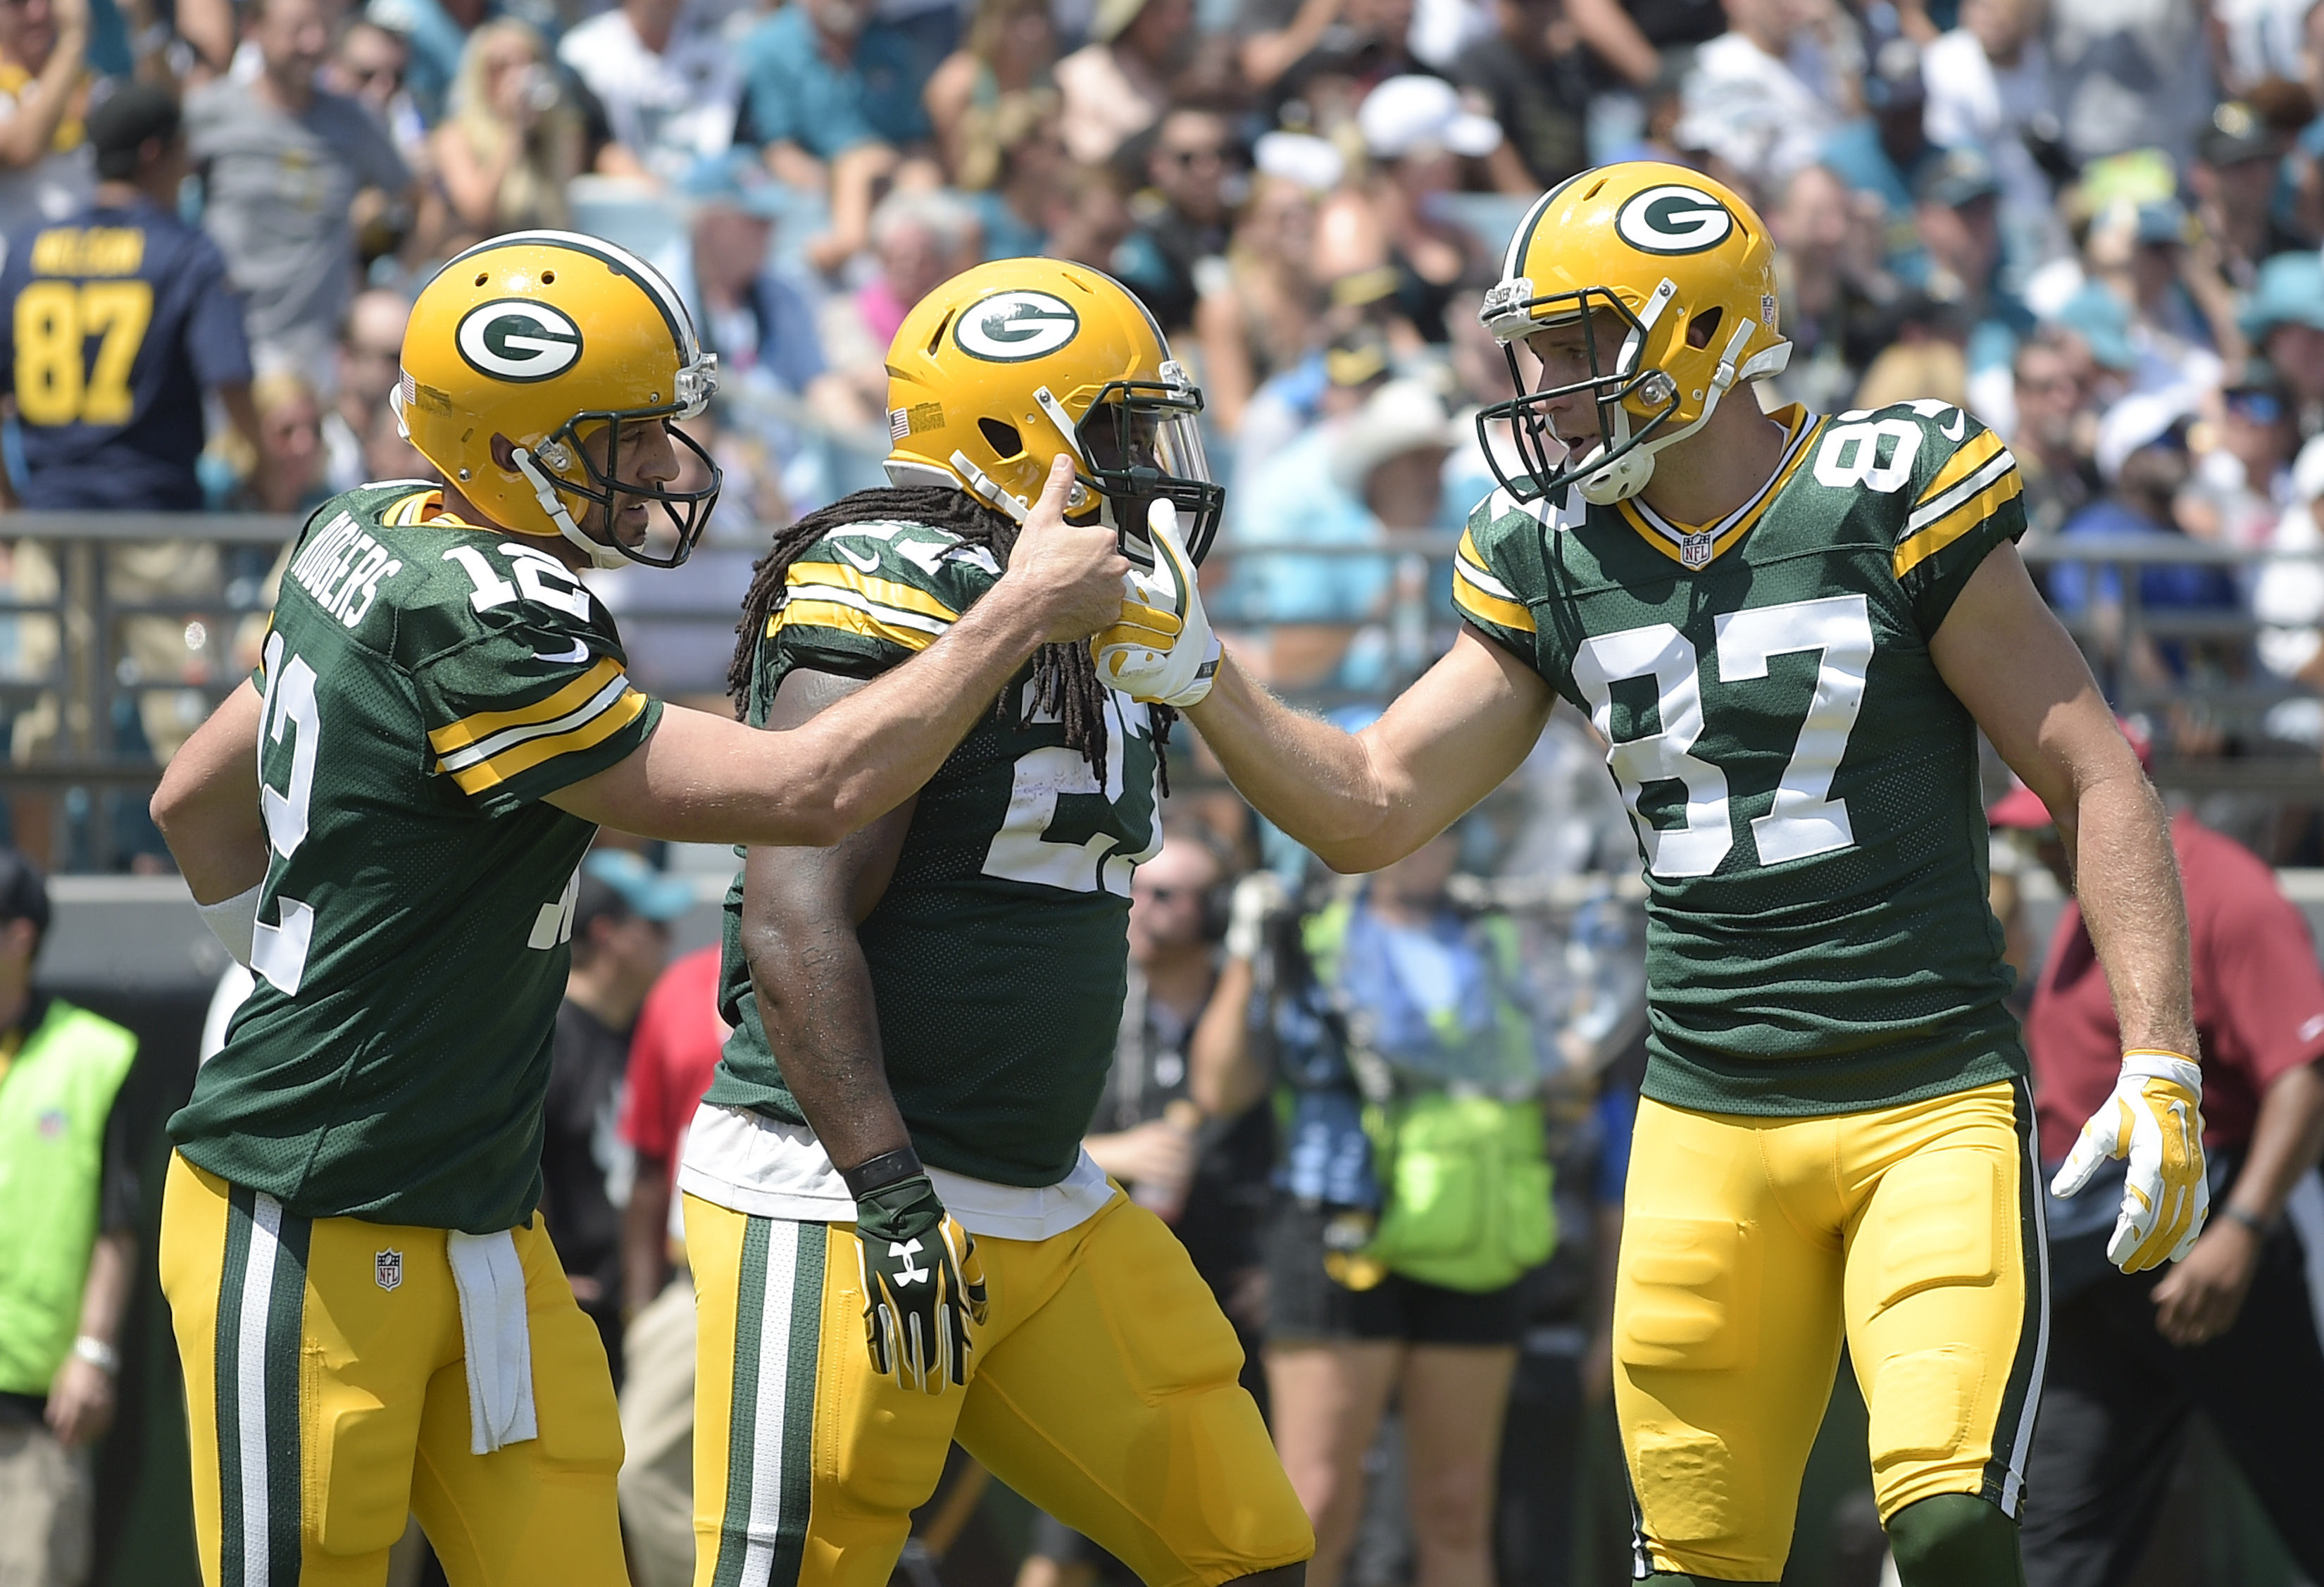 Green Bay Packers quarterback Aaron Rodgers celebrates his touchdown run against the Jacksonville Jaguars with wide receiver Jordy Nelson (87) during the first half of an NFL football game in Jacksonville, Fla., Sunday, Sept. 11, 2016.(AP Photo/Phelan M.